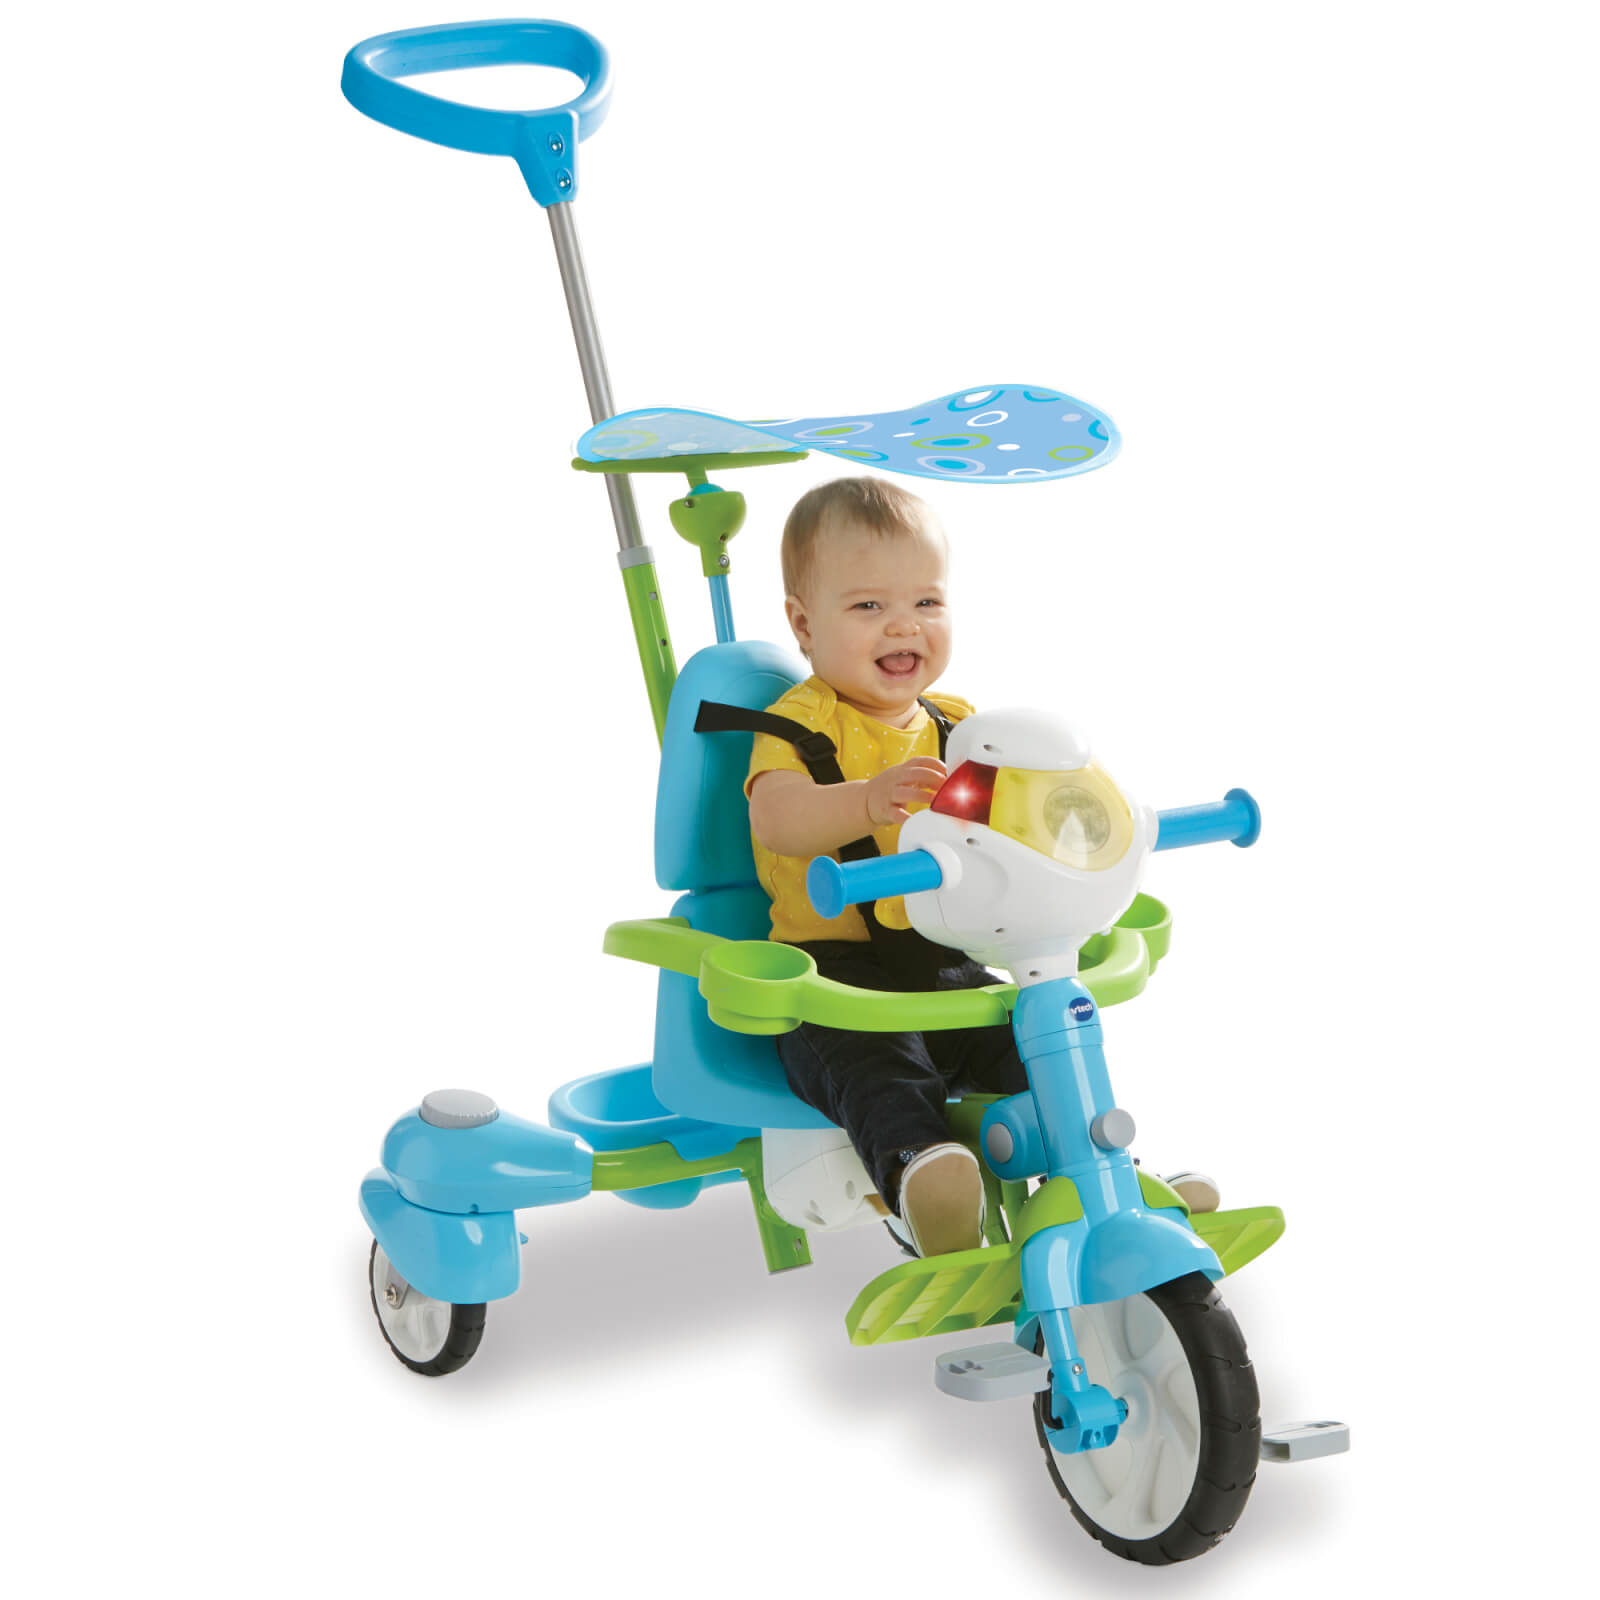 Vtech Baby Grow with Me 4 in 1 Trike